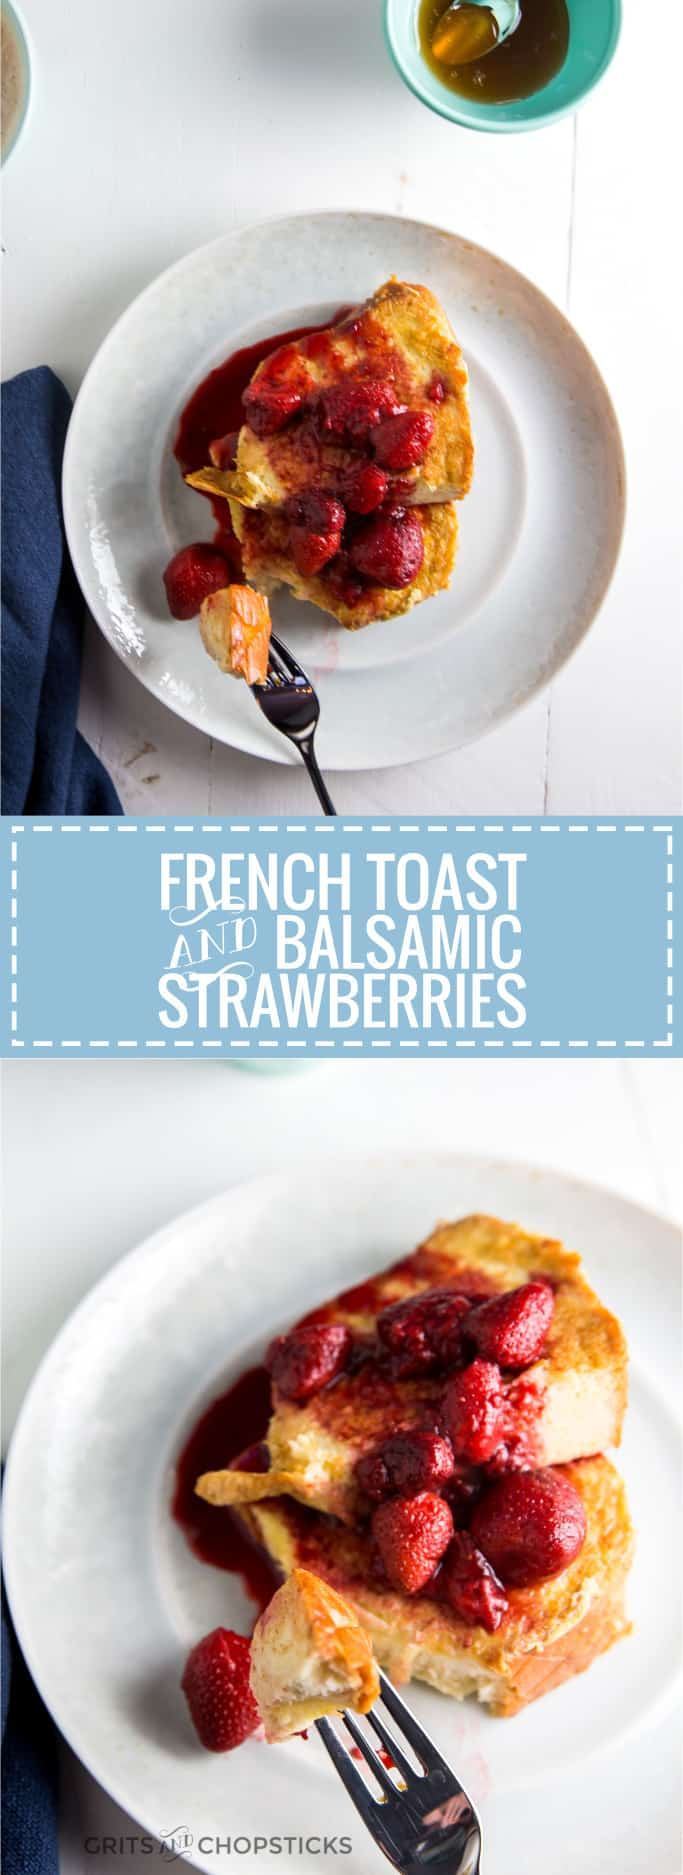 Strawberries simmered in balsamic vinegar make this custardy challah French toast. Try it already!